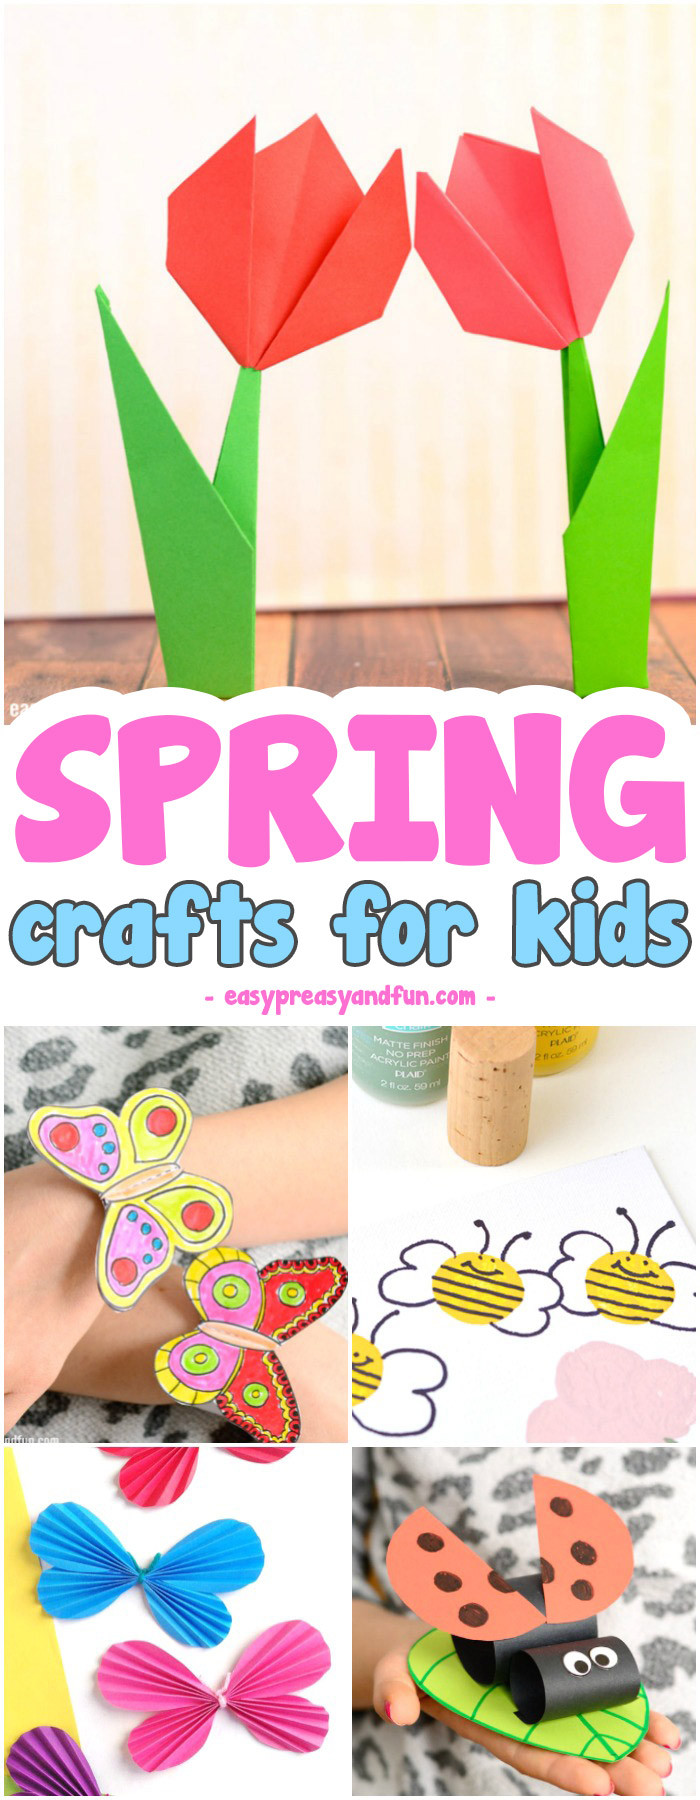 Spring Crafts Preschool  Spring Crafts for Kids Art and Craft Project Ideas for